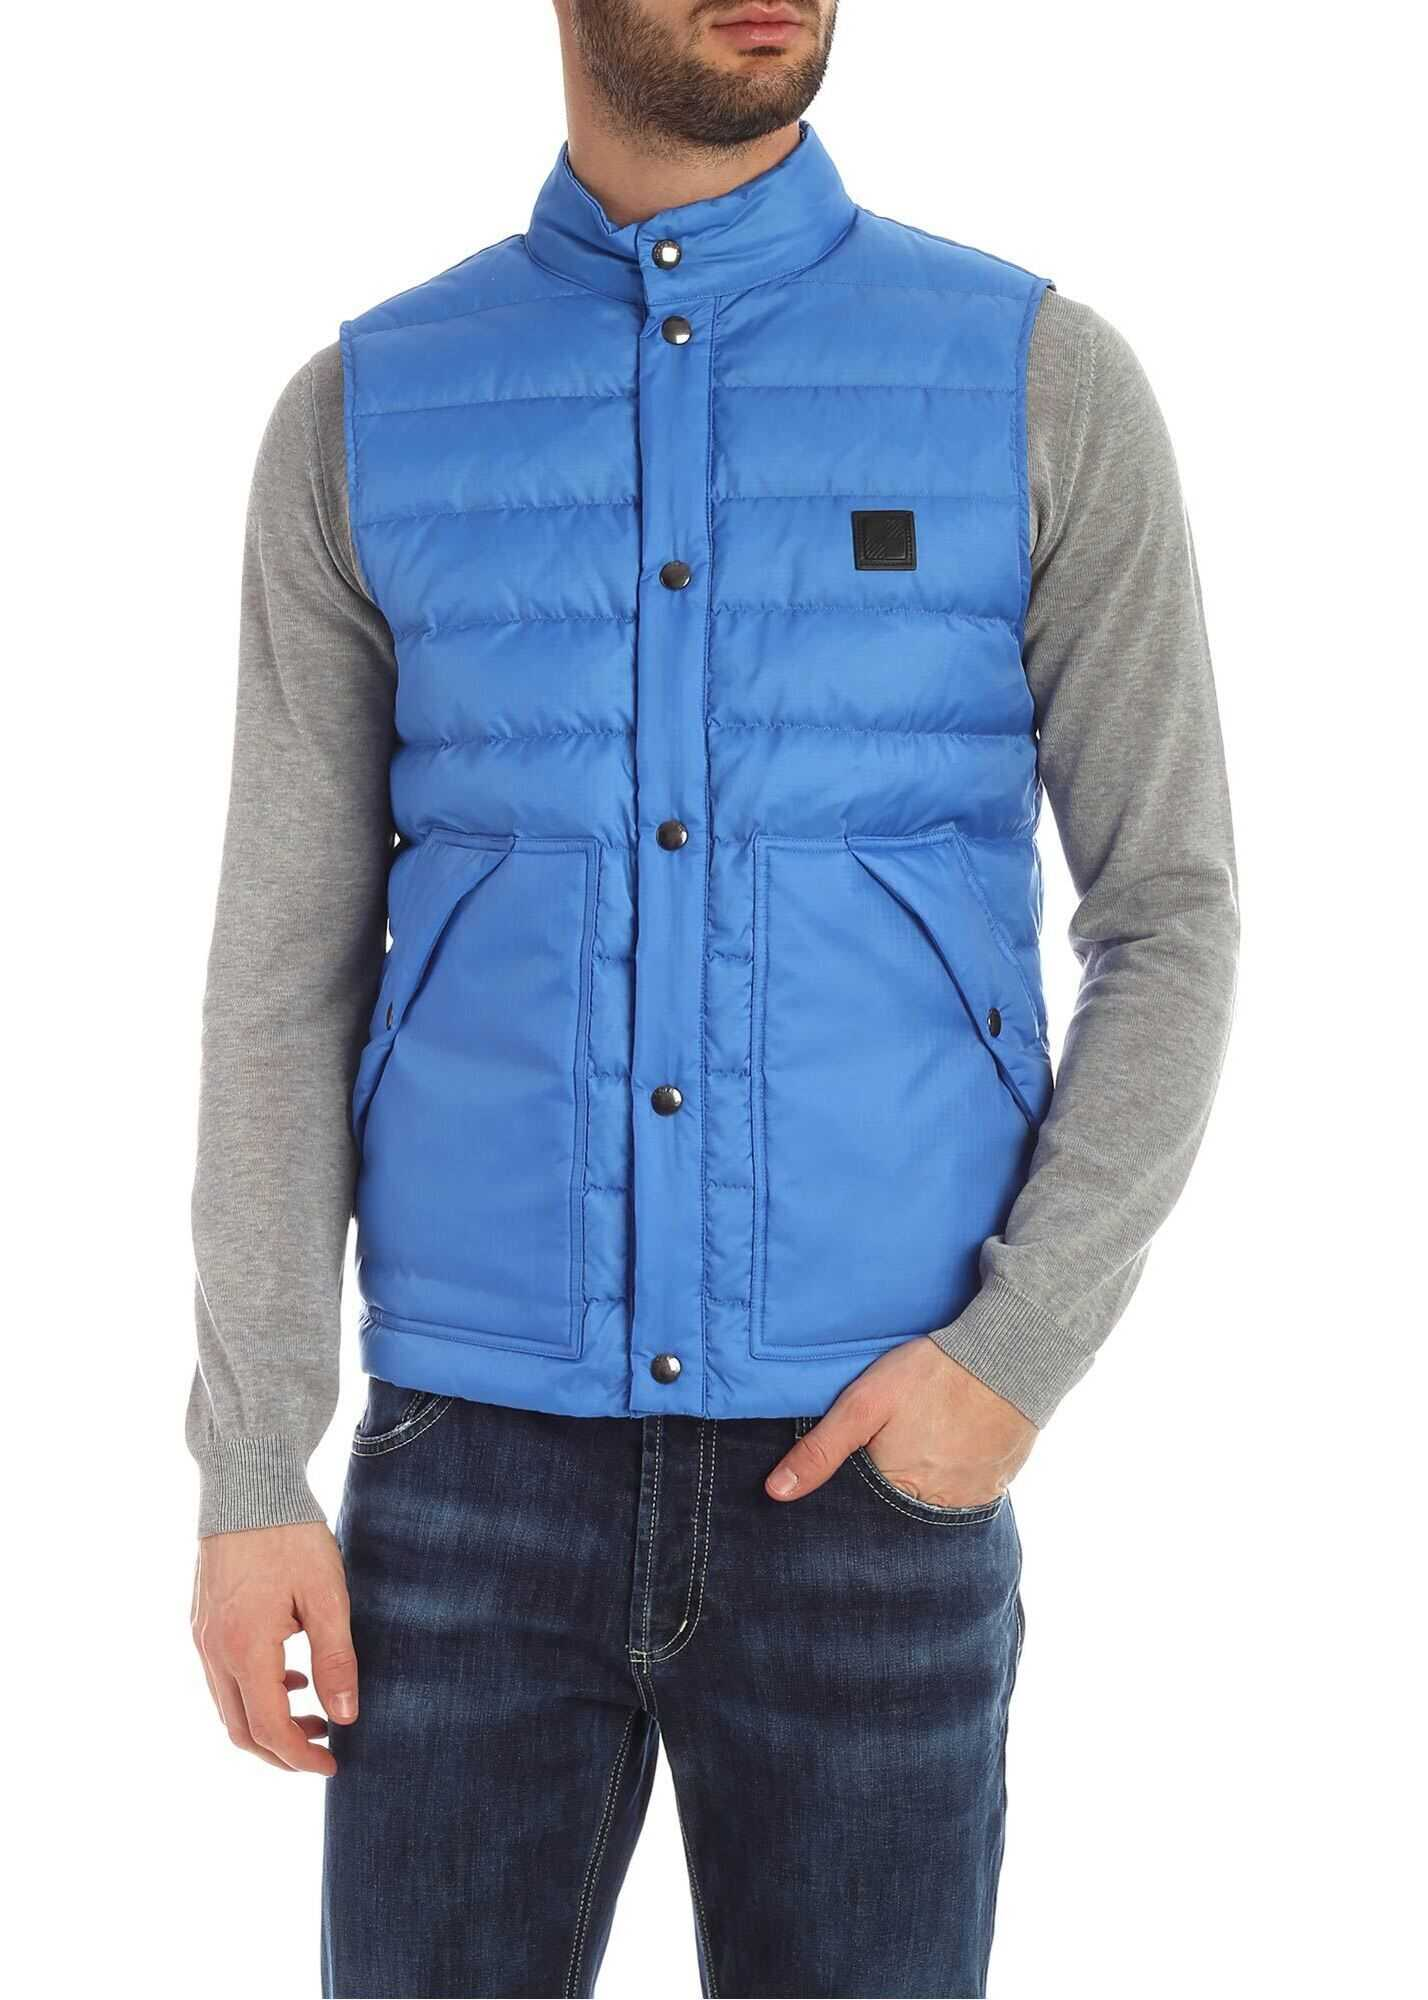 Woolrich Quilted Waistcoat In Turquoise Turquoise